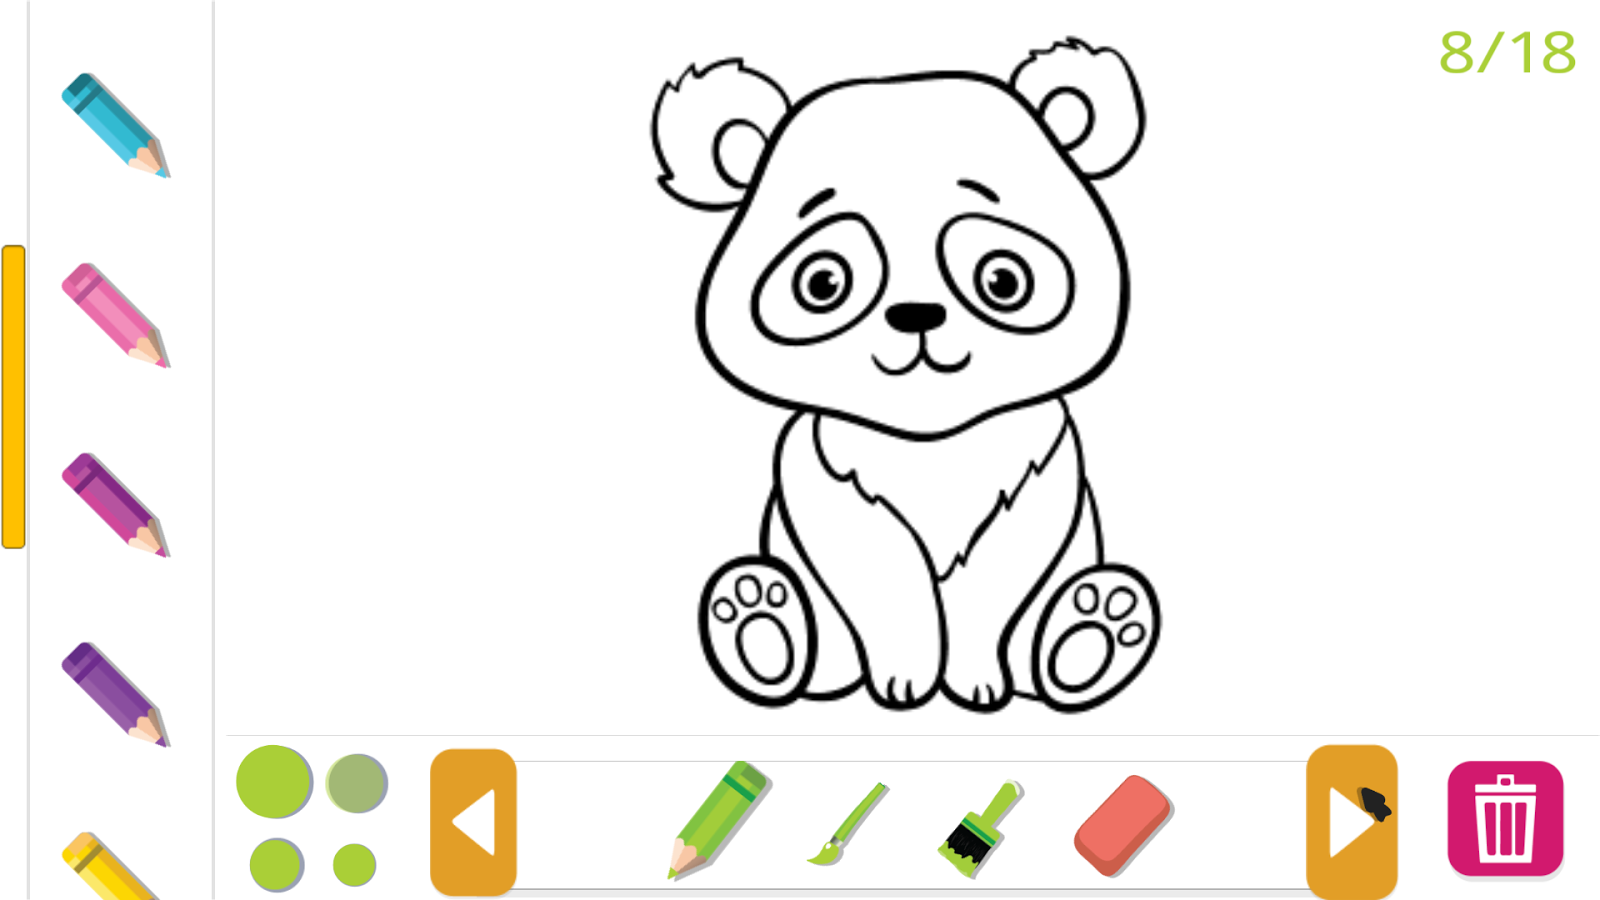 Free Draw For Kids Android Apps On Google Play